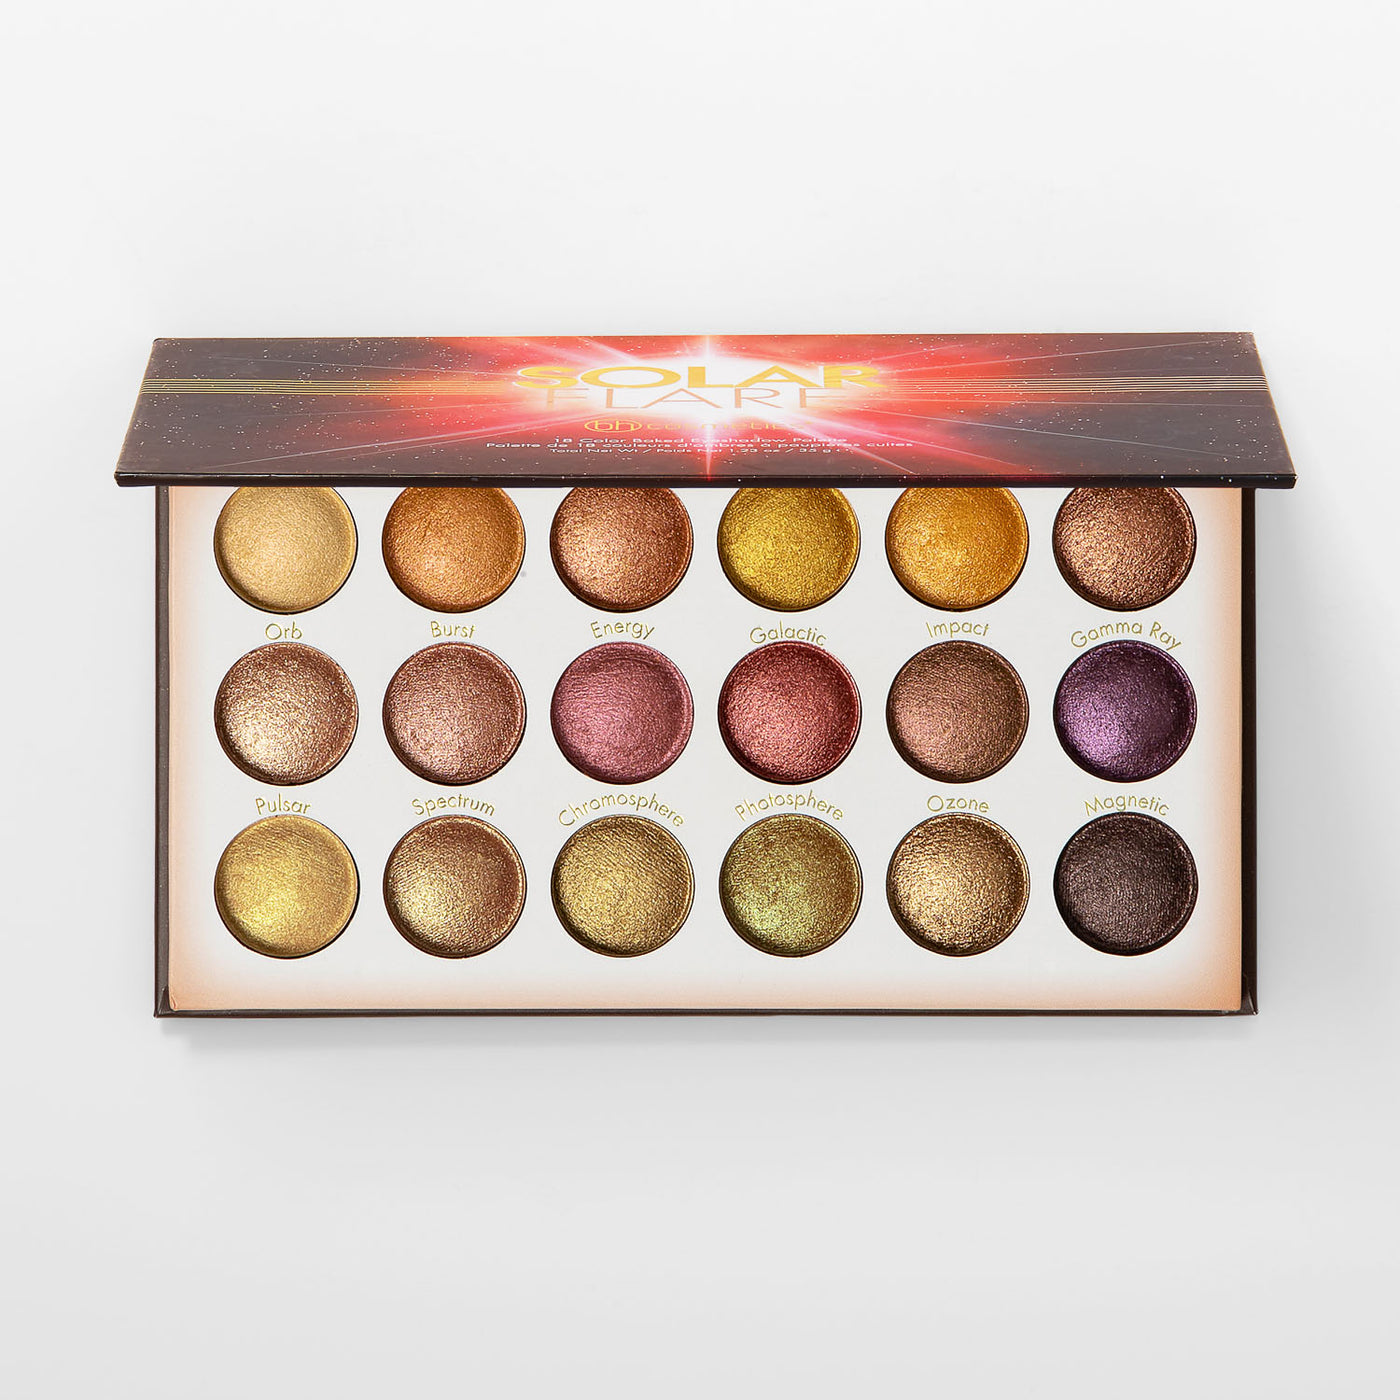 Solar Flare 18 Color Baked Eyeshadow Palette   BH Cosmetics